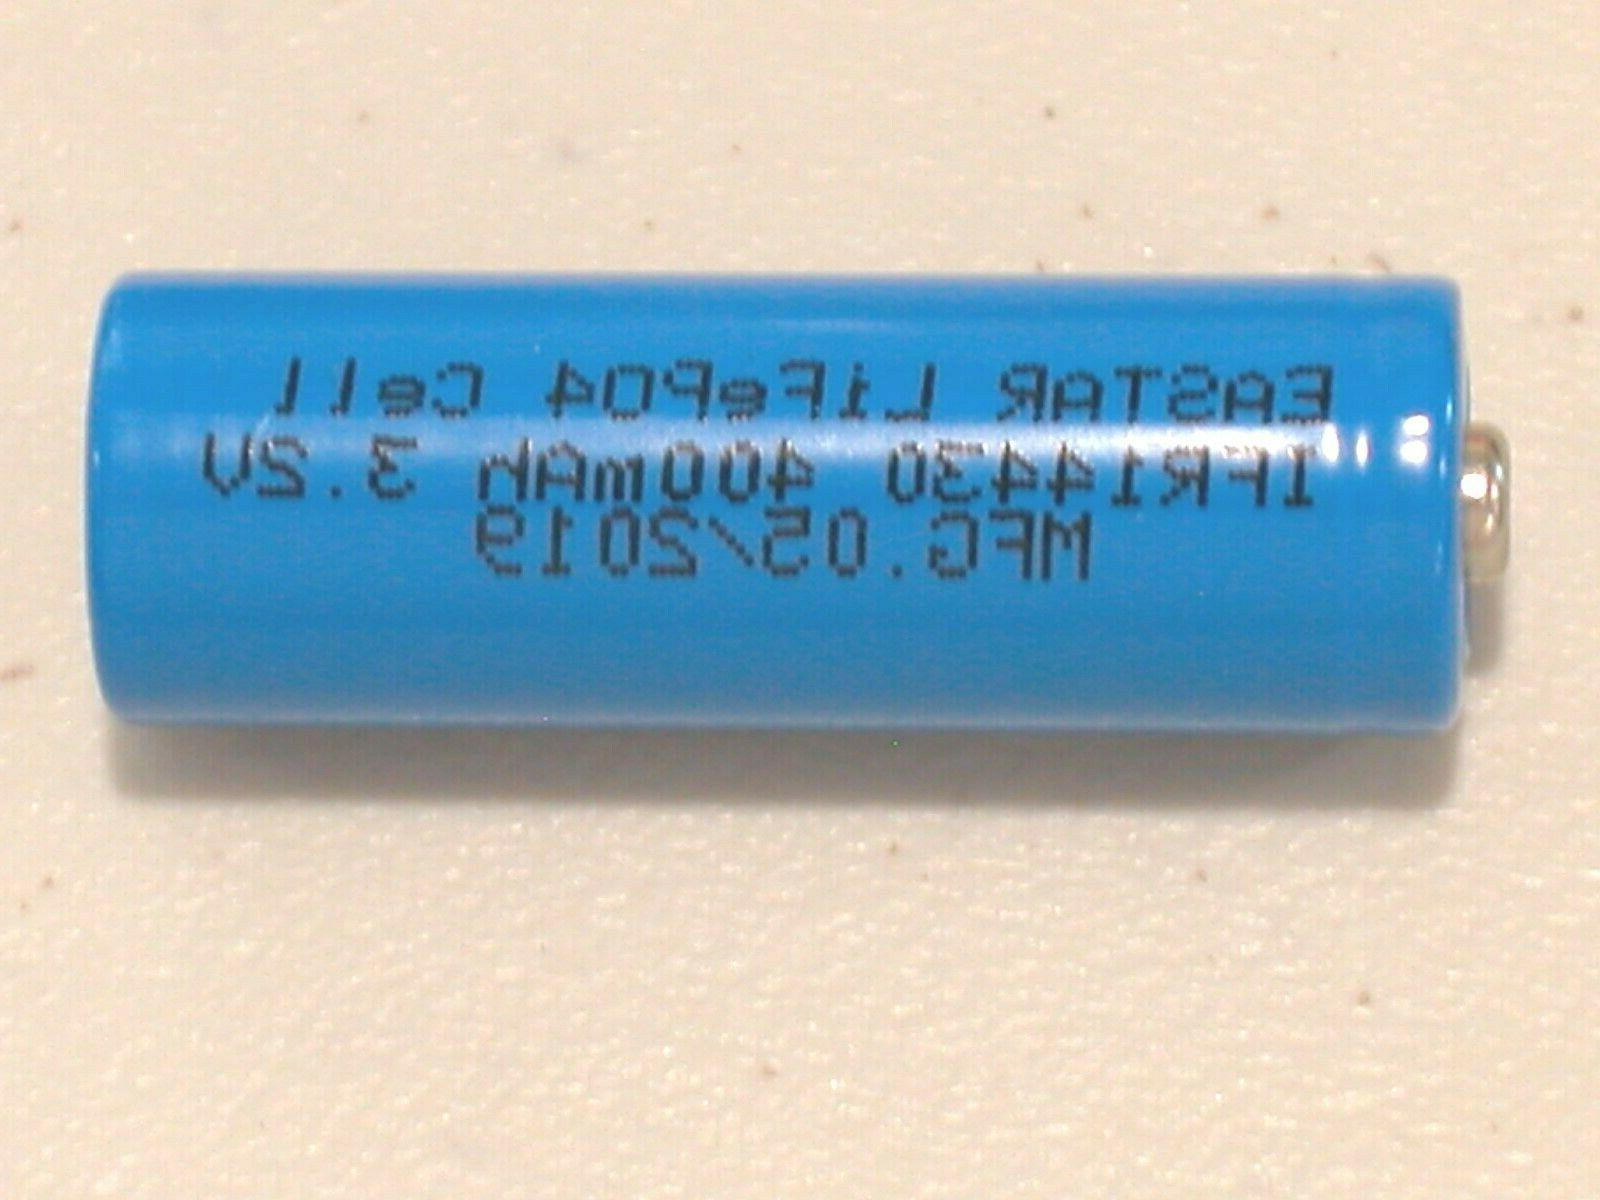 4 EASTAR 14430 3.2v LiFePO4 BATTERY 400mAh